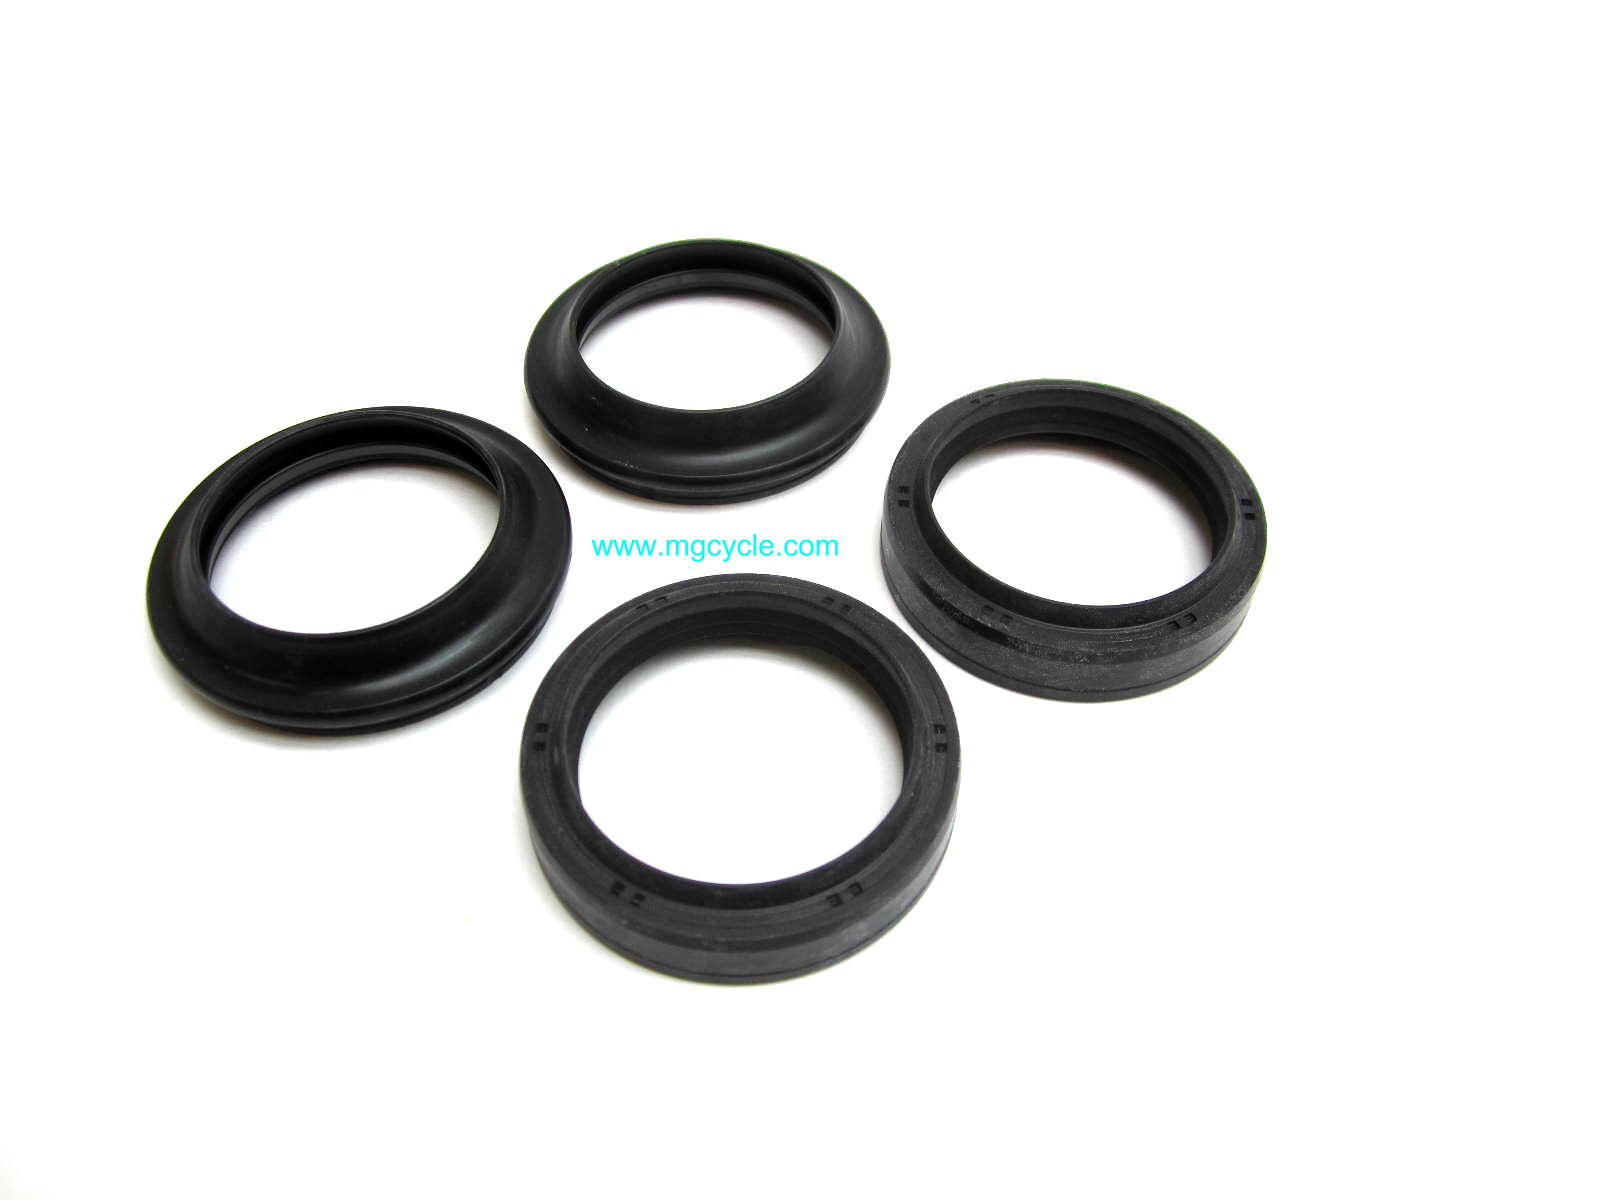 Ohlins fork seals kit for Ohlins equipped V11 series